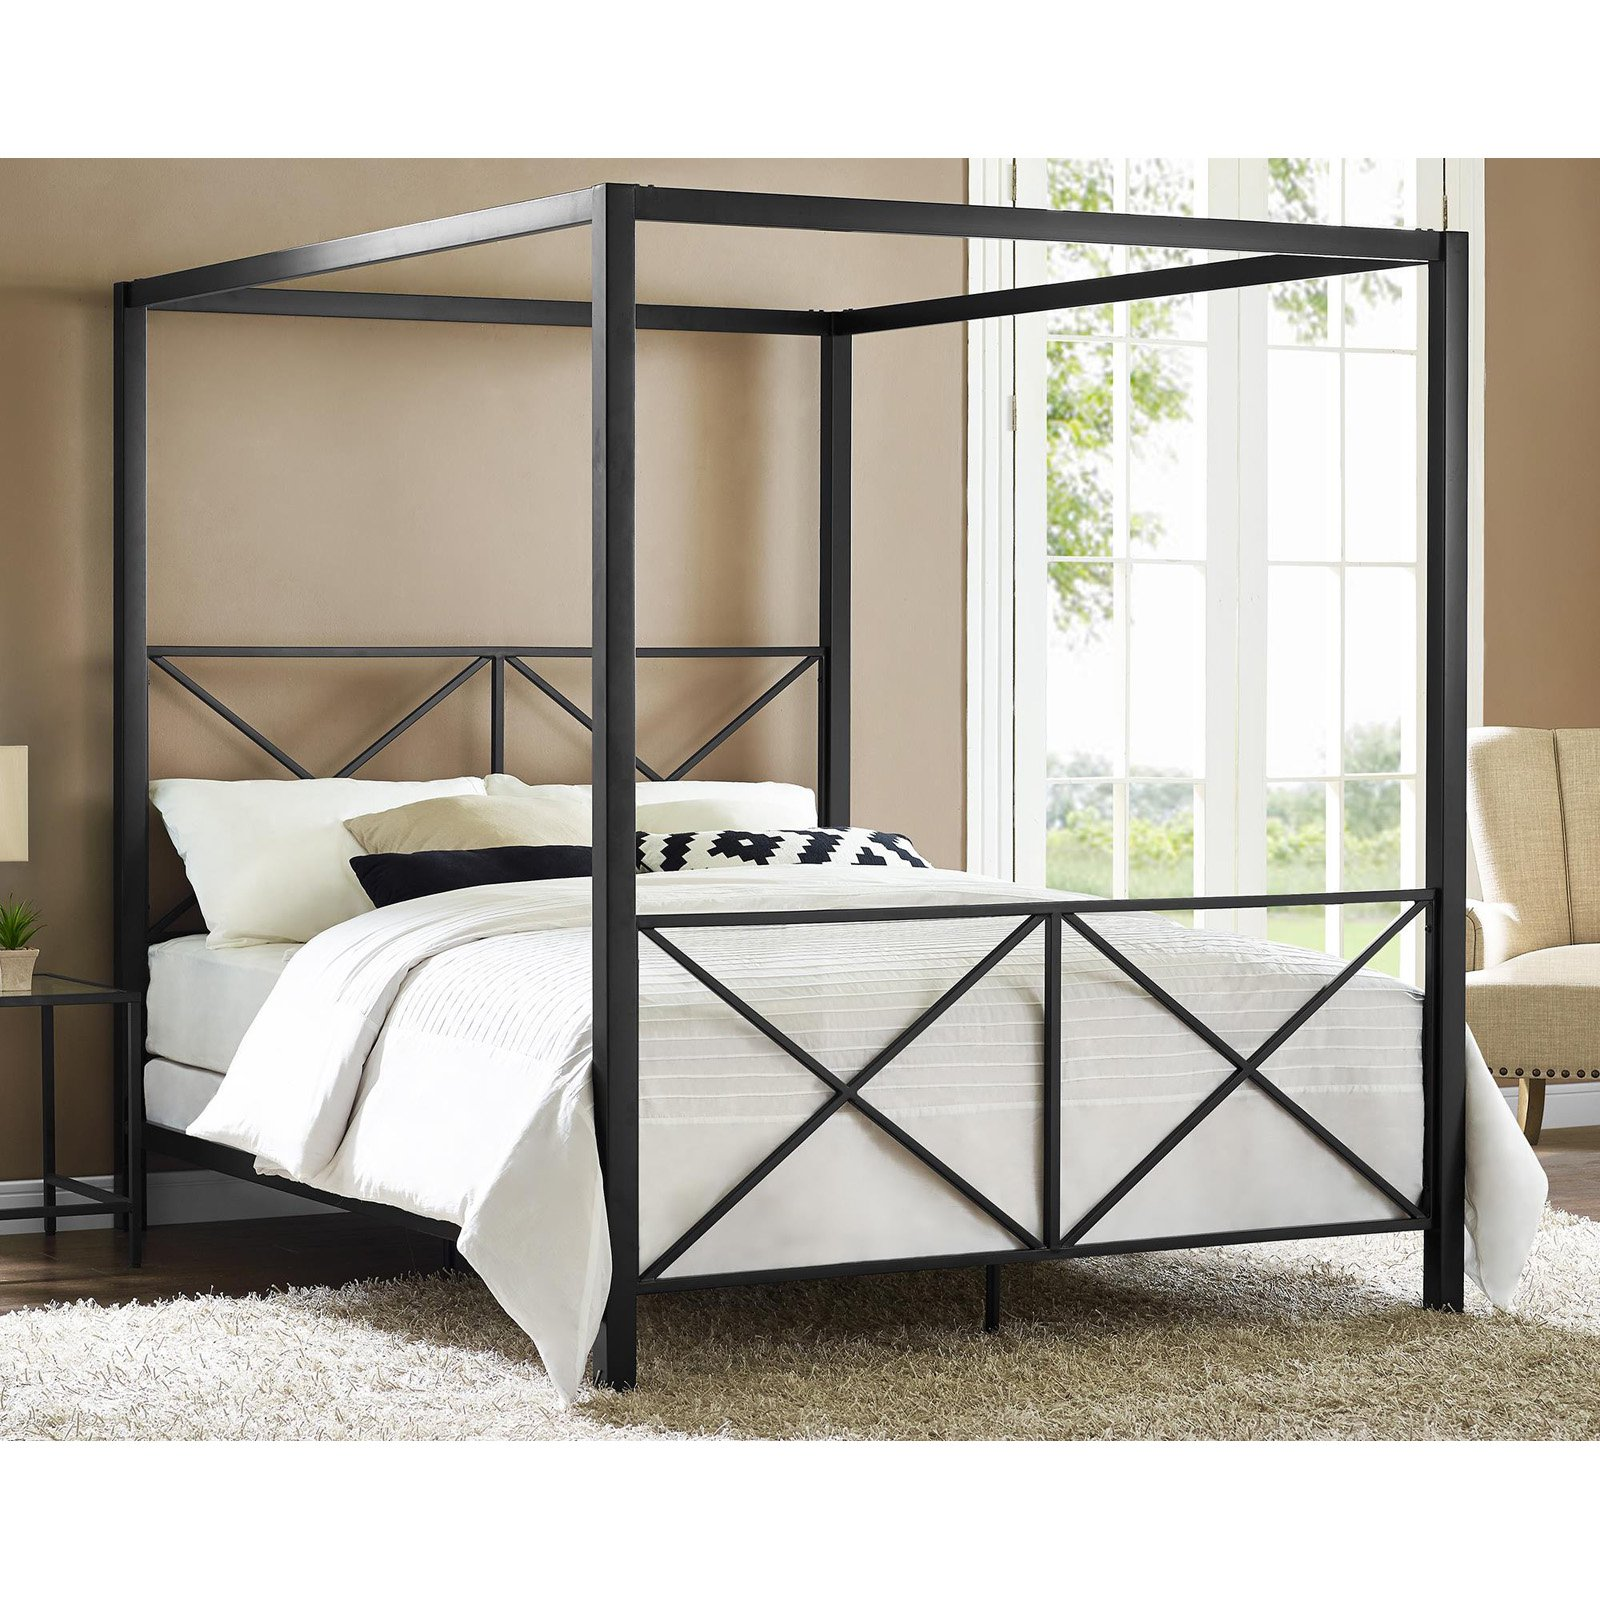 DHP Rosedale Metal Canopy Bed Frame Queen Size Multiple Colors